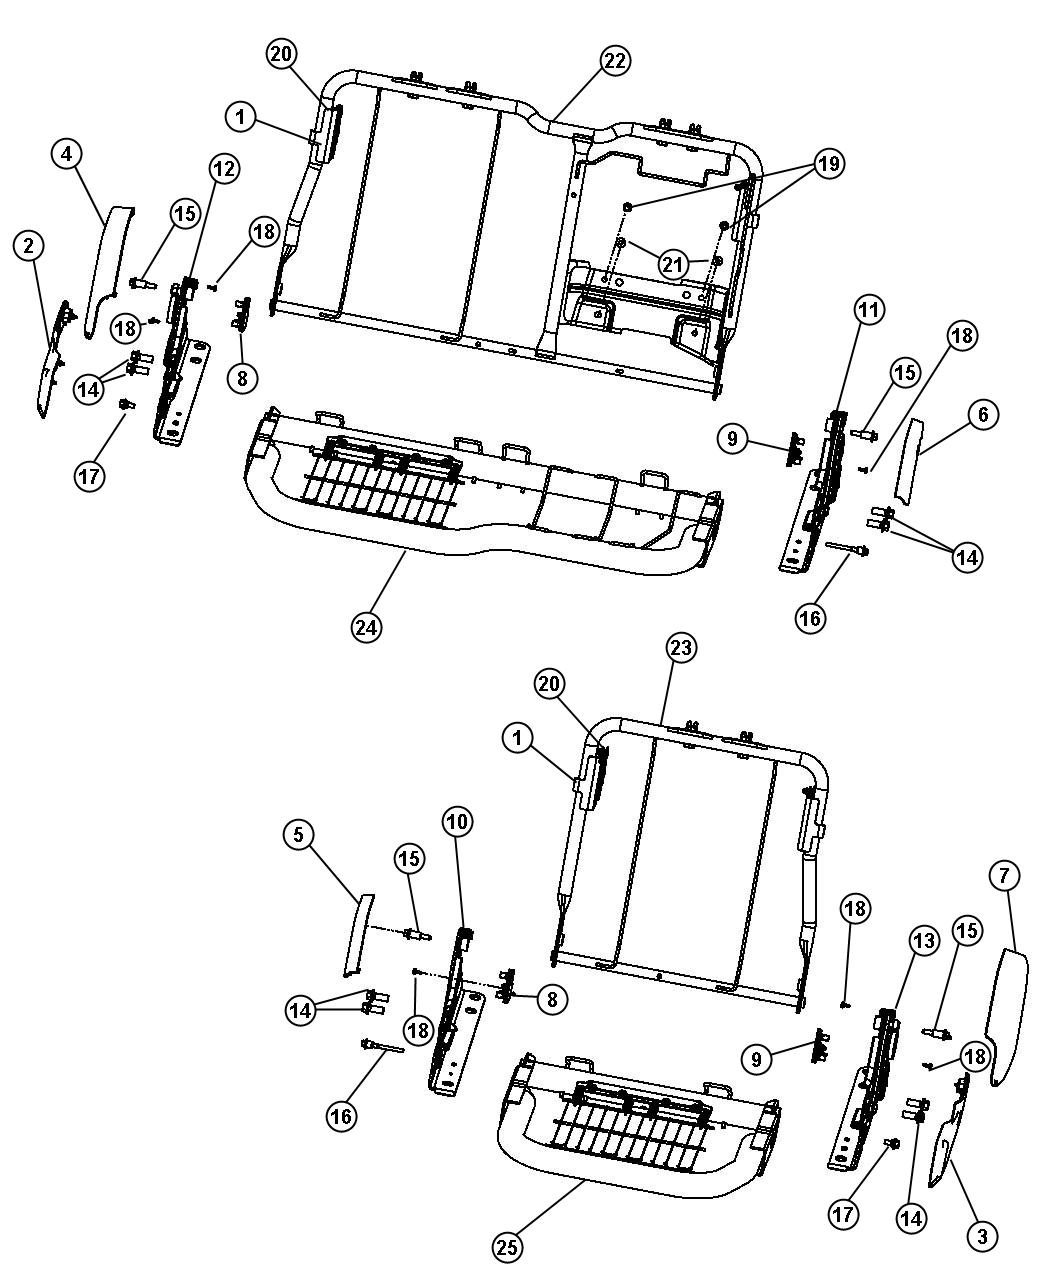 How Rebuild Your 80s Chevy Steering Column 18823 also Wiring Diagrams 1978 Jeep Wagoneer 360 also Index php also 1967 Jeep Cj5 Wiring Harness likewise Jeepster  mando Alternator Wiring. on 1972 jeep cj5 wiring diagram